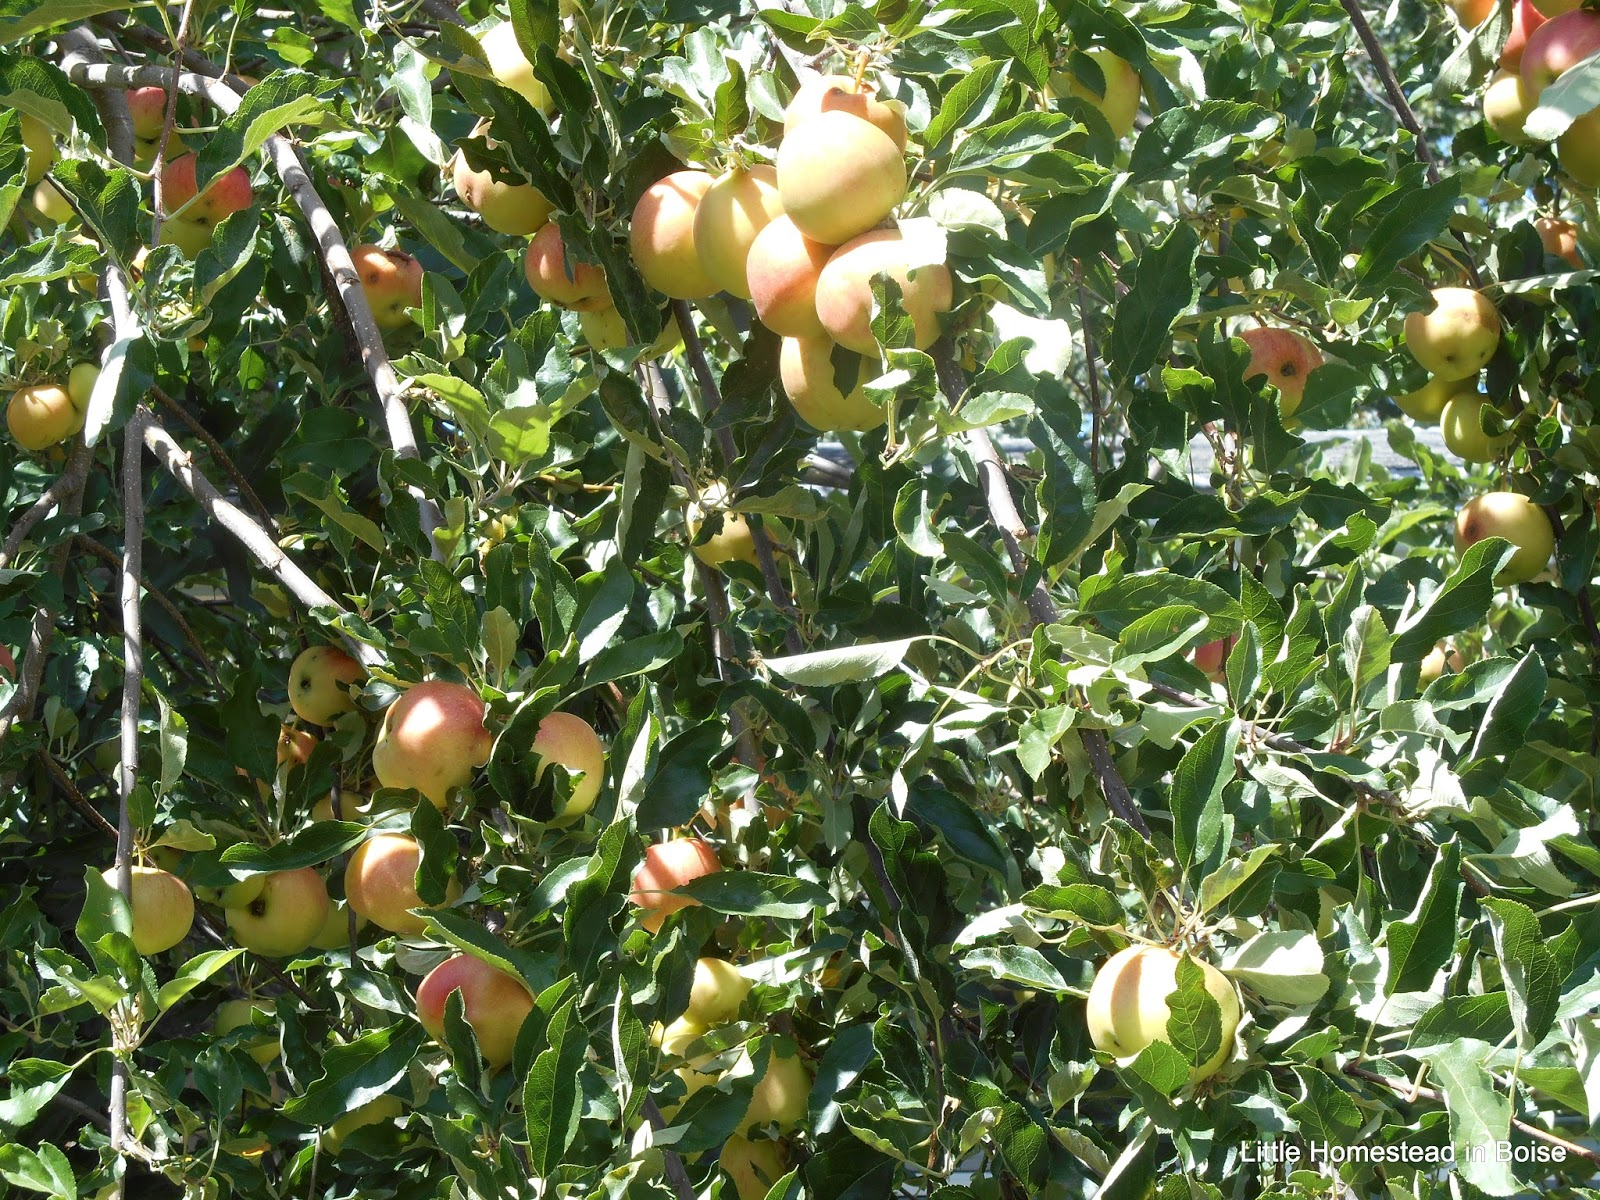 Little homestead in boise it 39 s apple harvest time for Where can i go apple picking near me